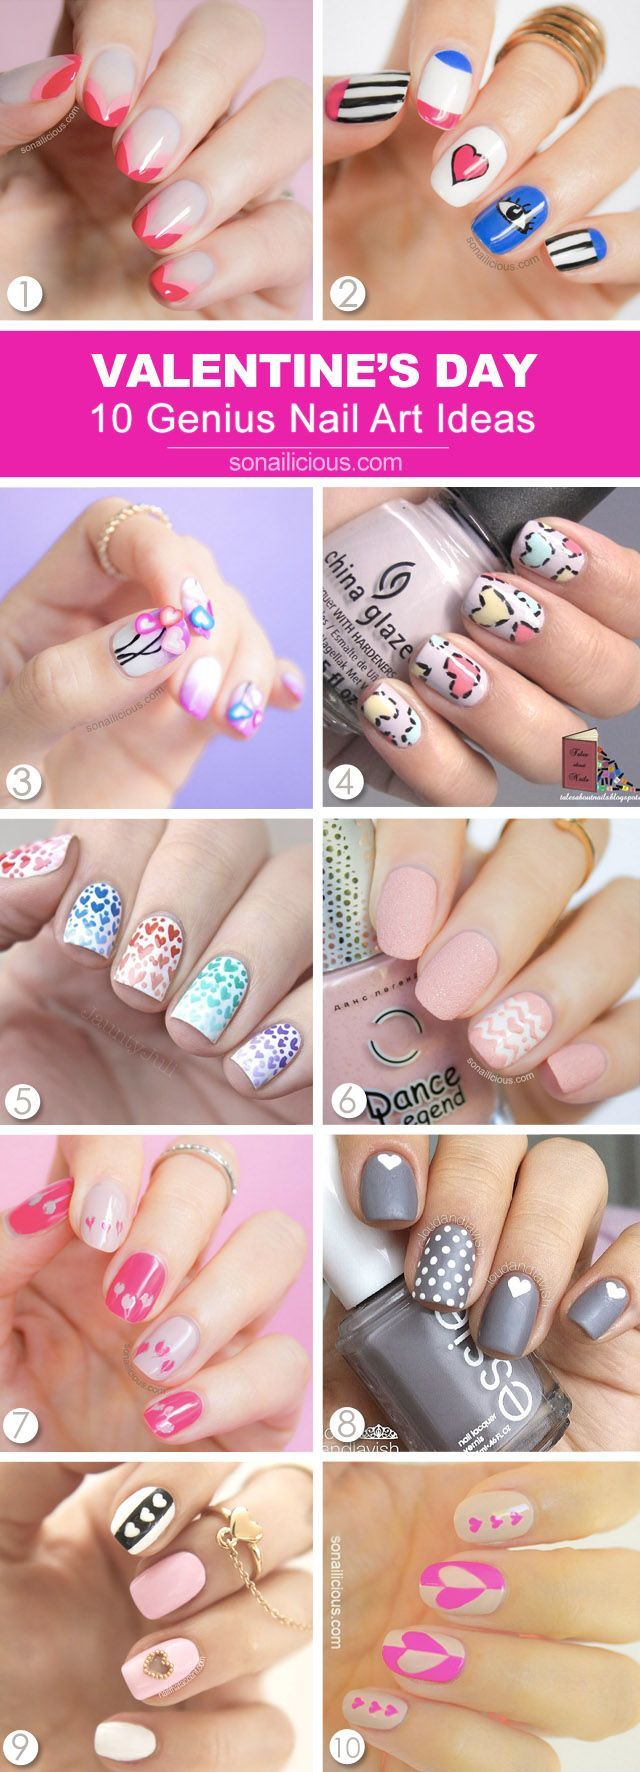 10 best Valentine's Day nail art ideas. Click through for tutorials. #valentinesday #nailart